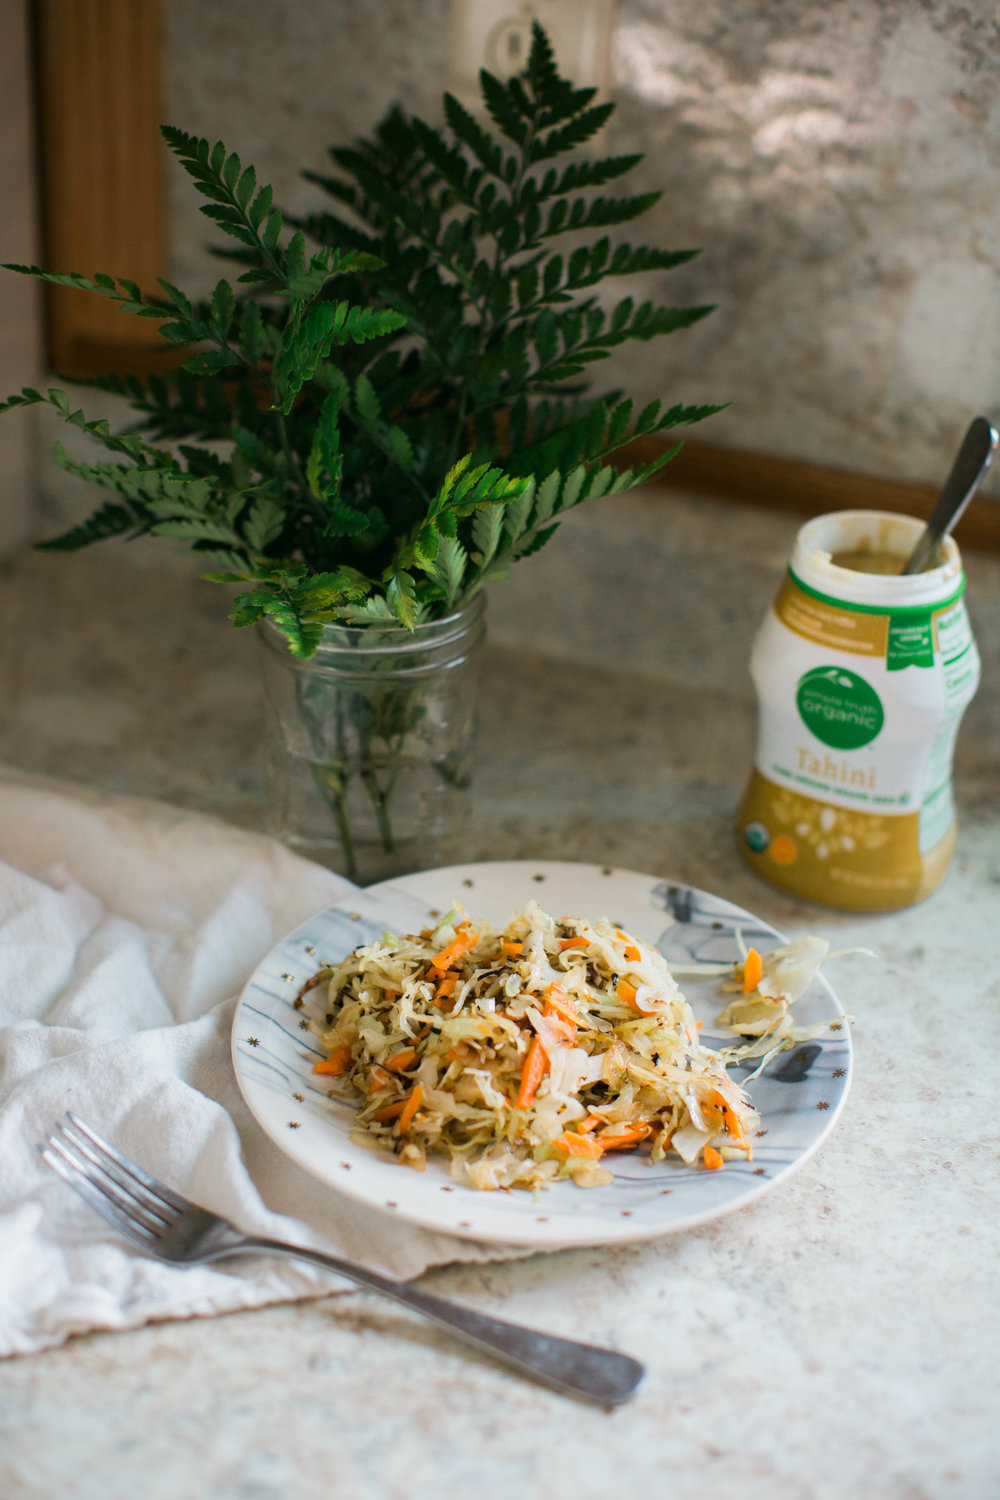 jennahazelphotography-cabbage-with-tahini-6505.jpg